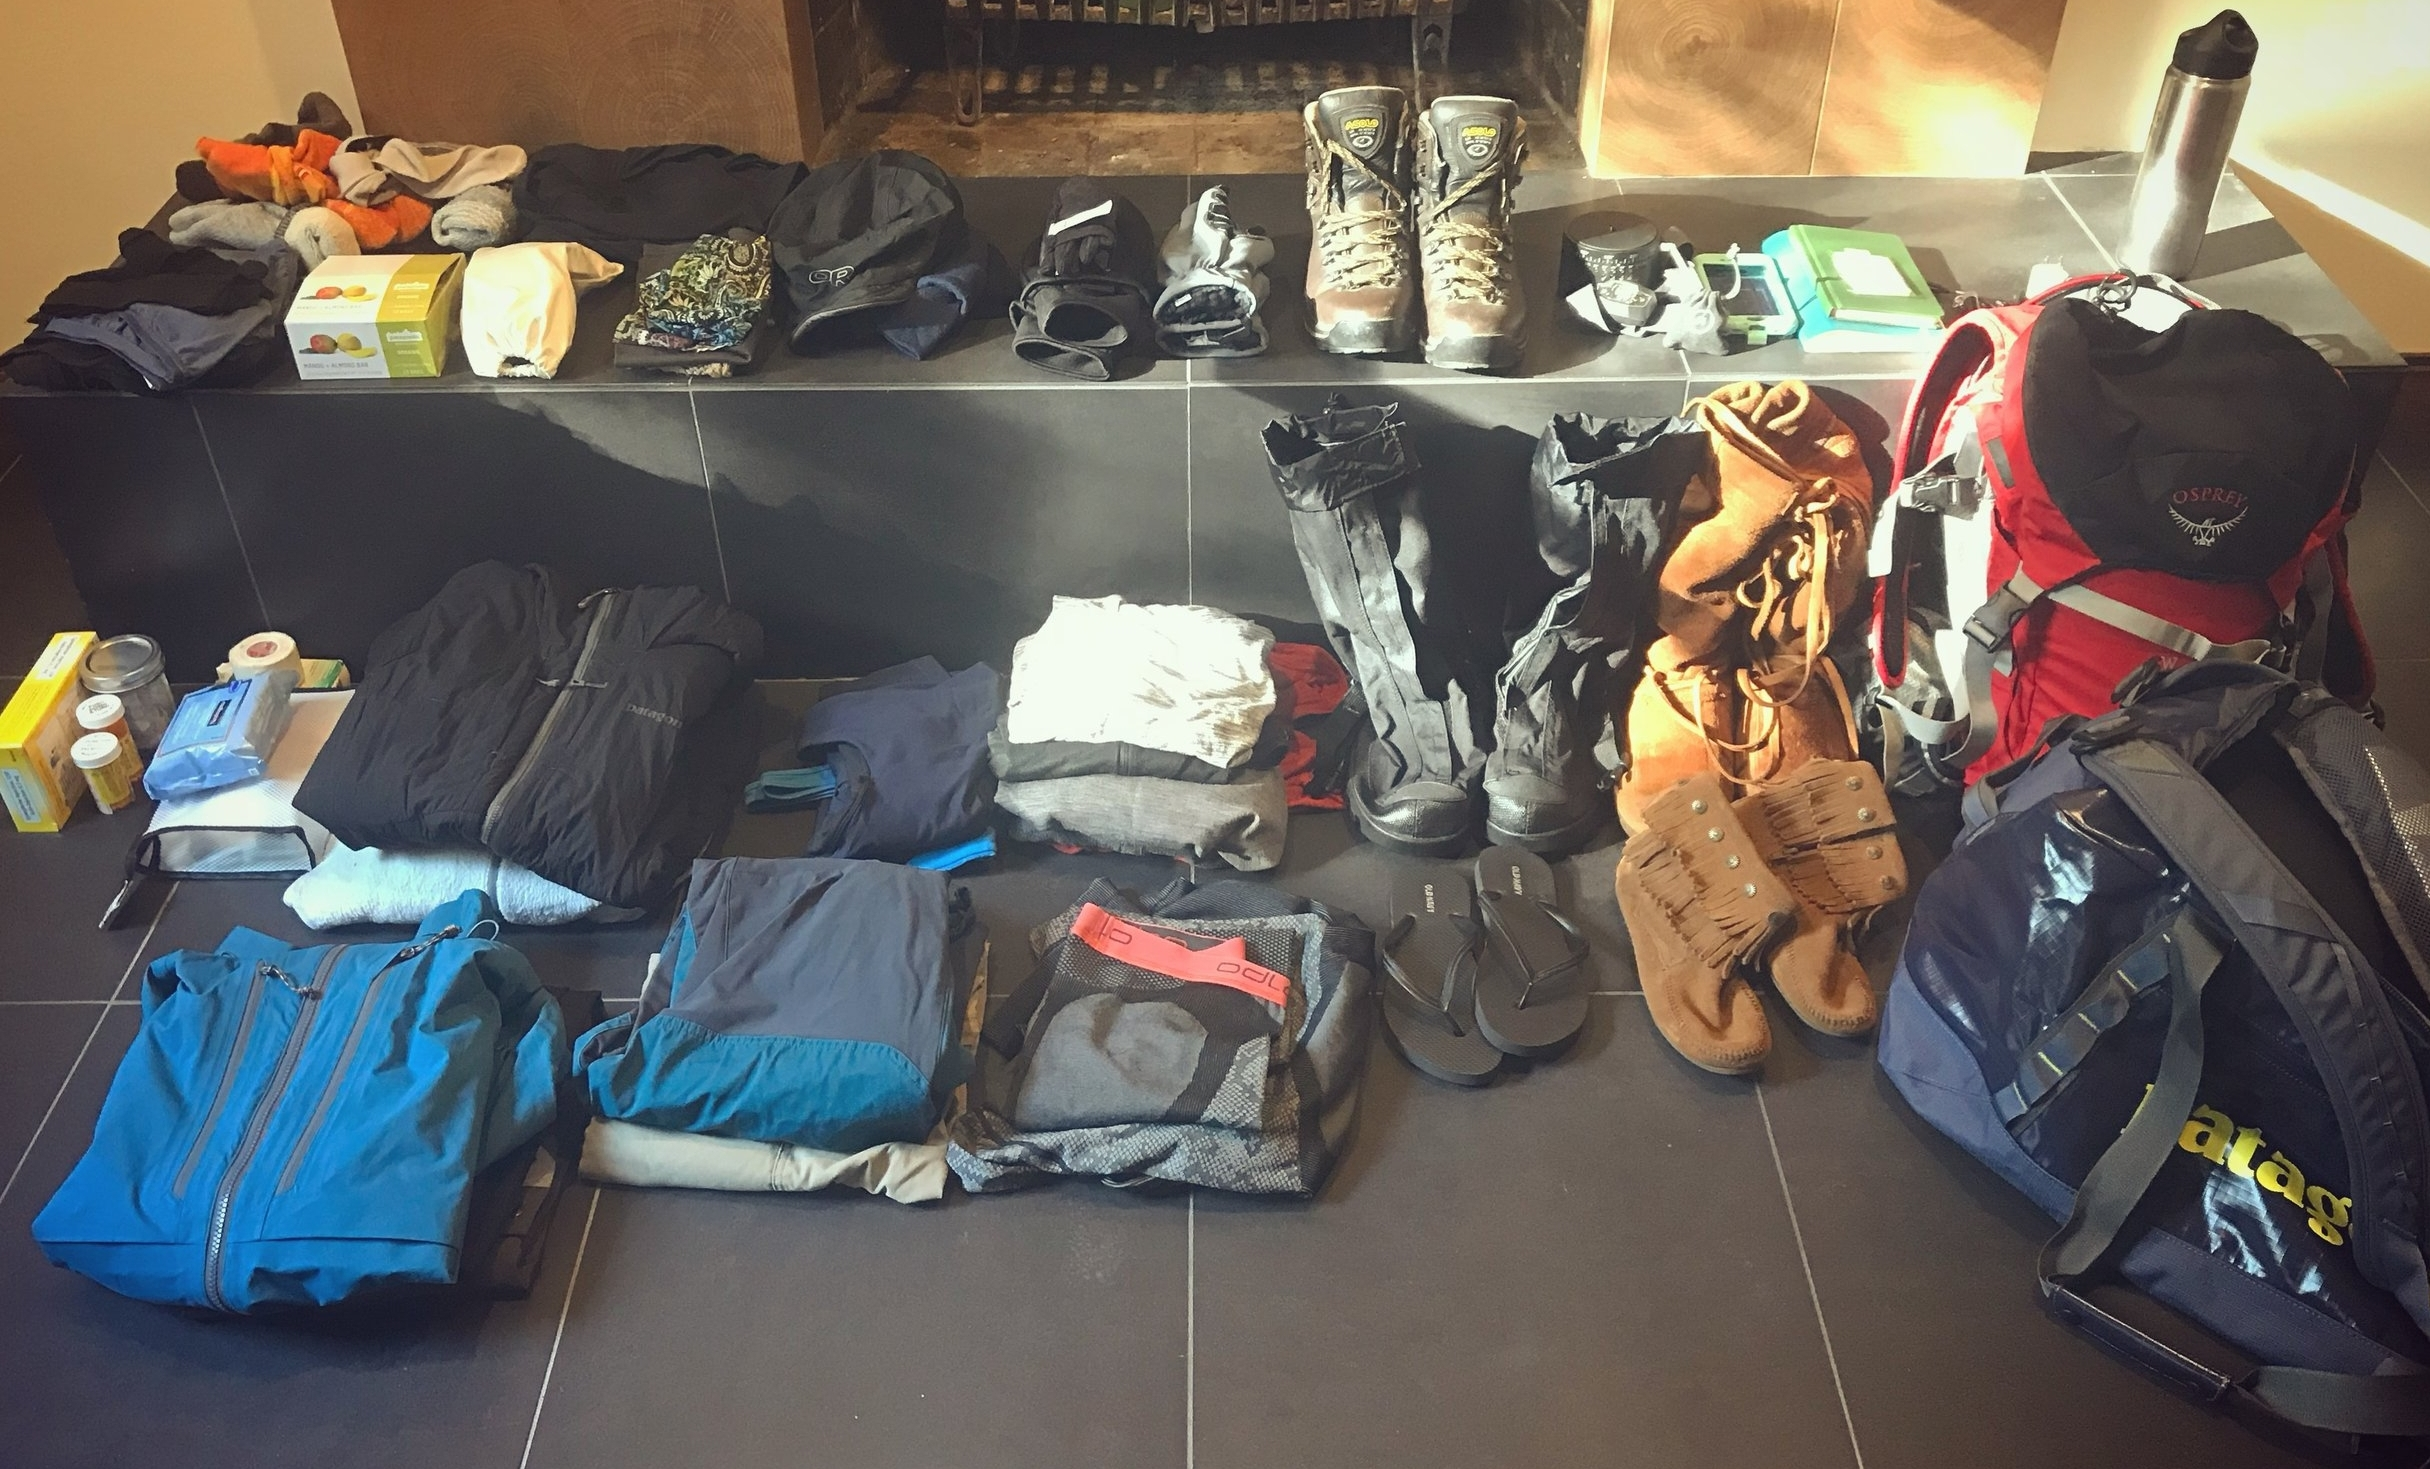 Setting out my gear for the expedition.